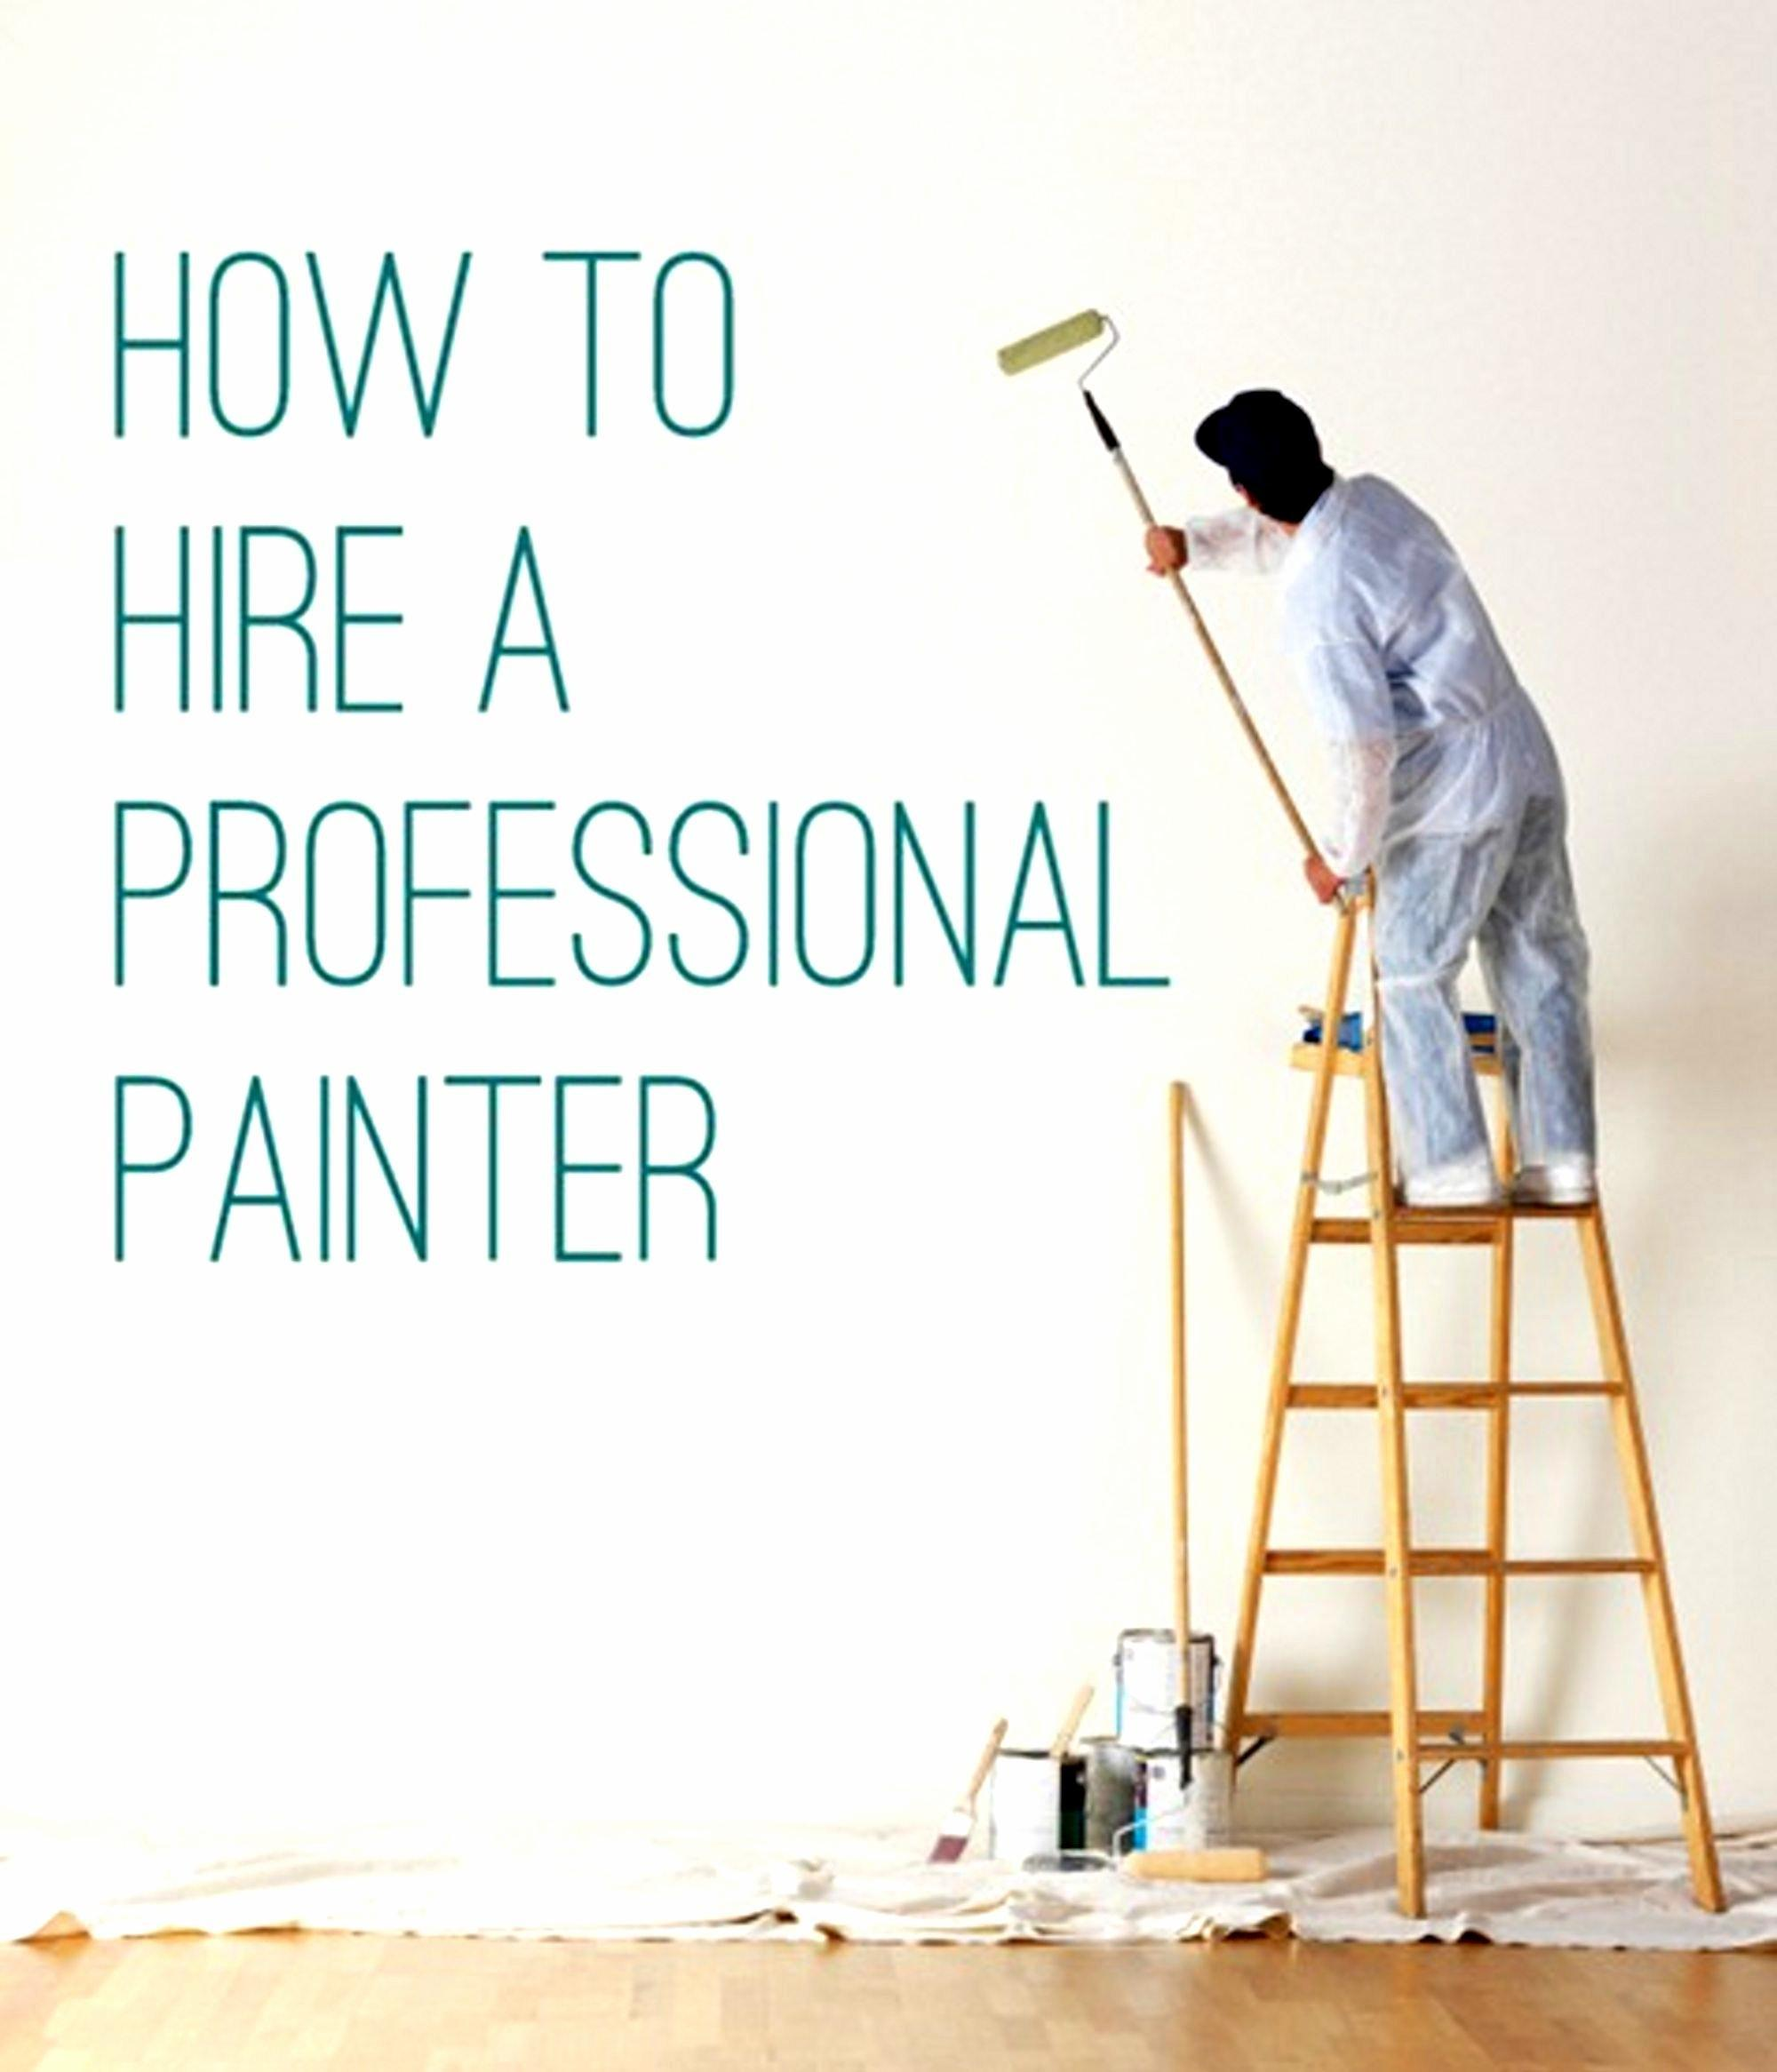 Save Money Hire Professional Painter